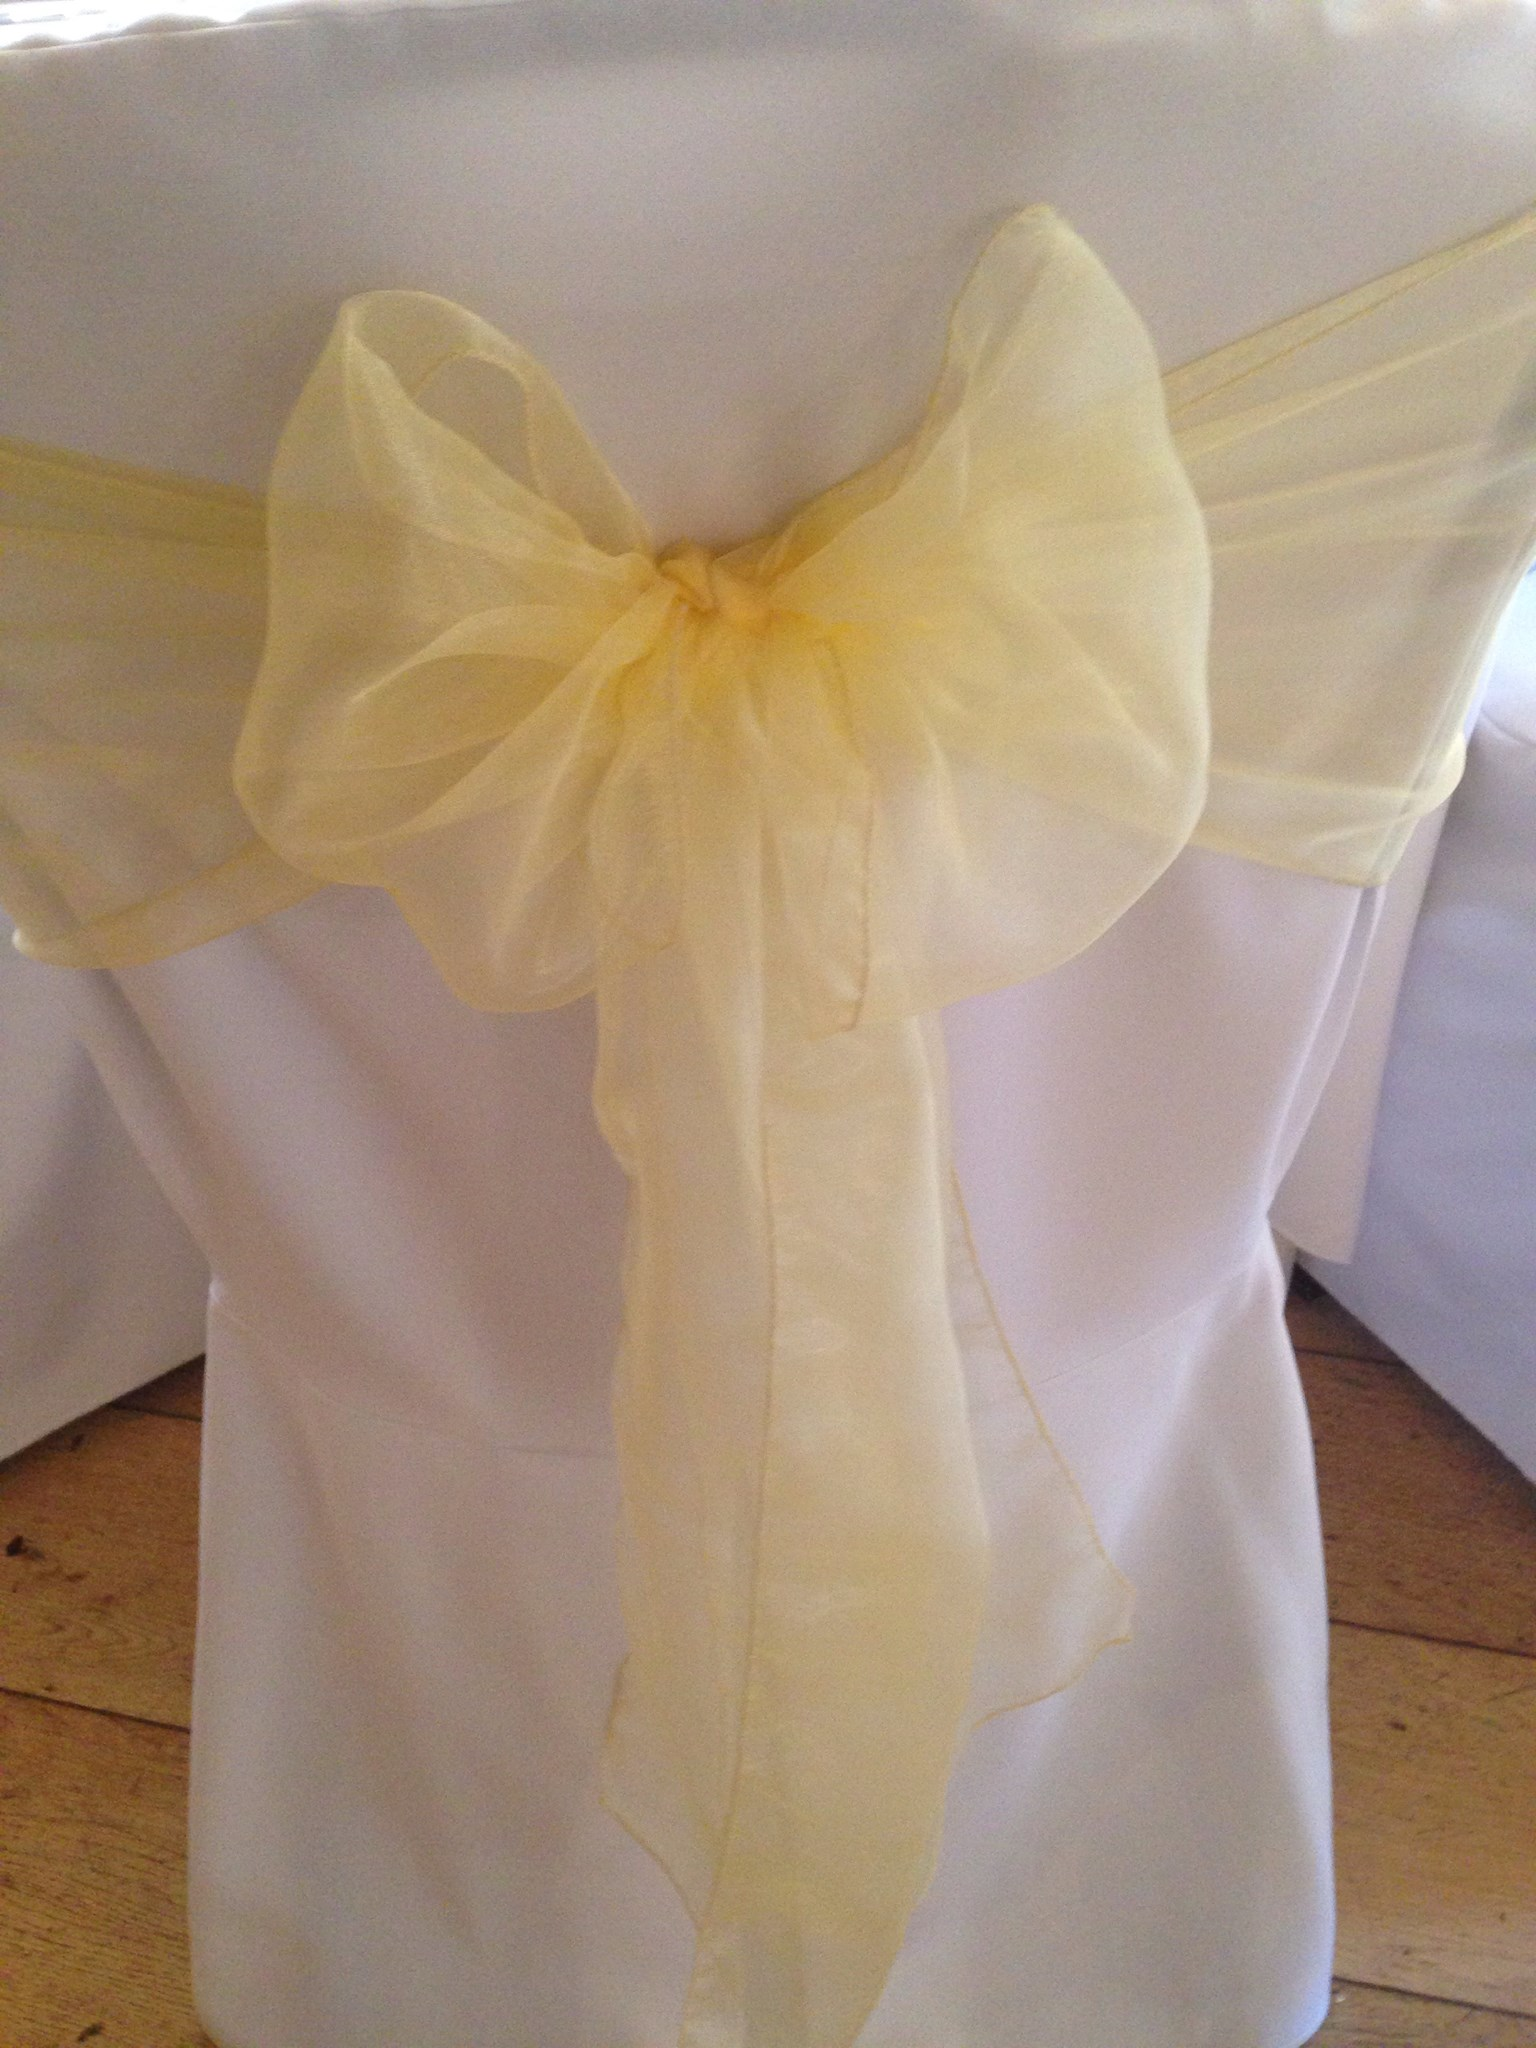 Chair Covers Essex - Coverit